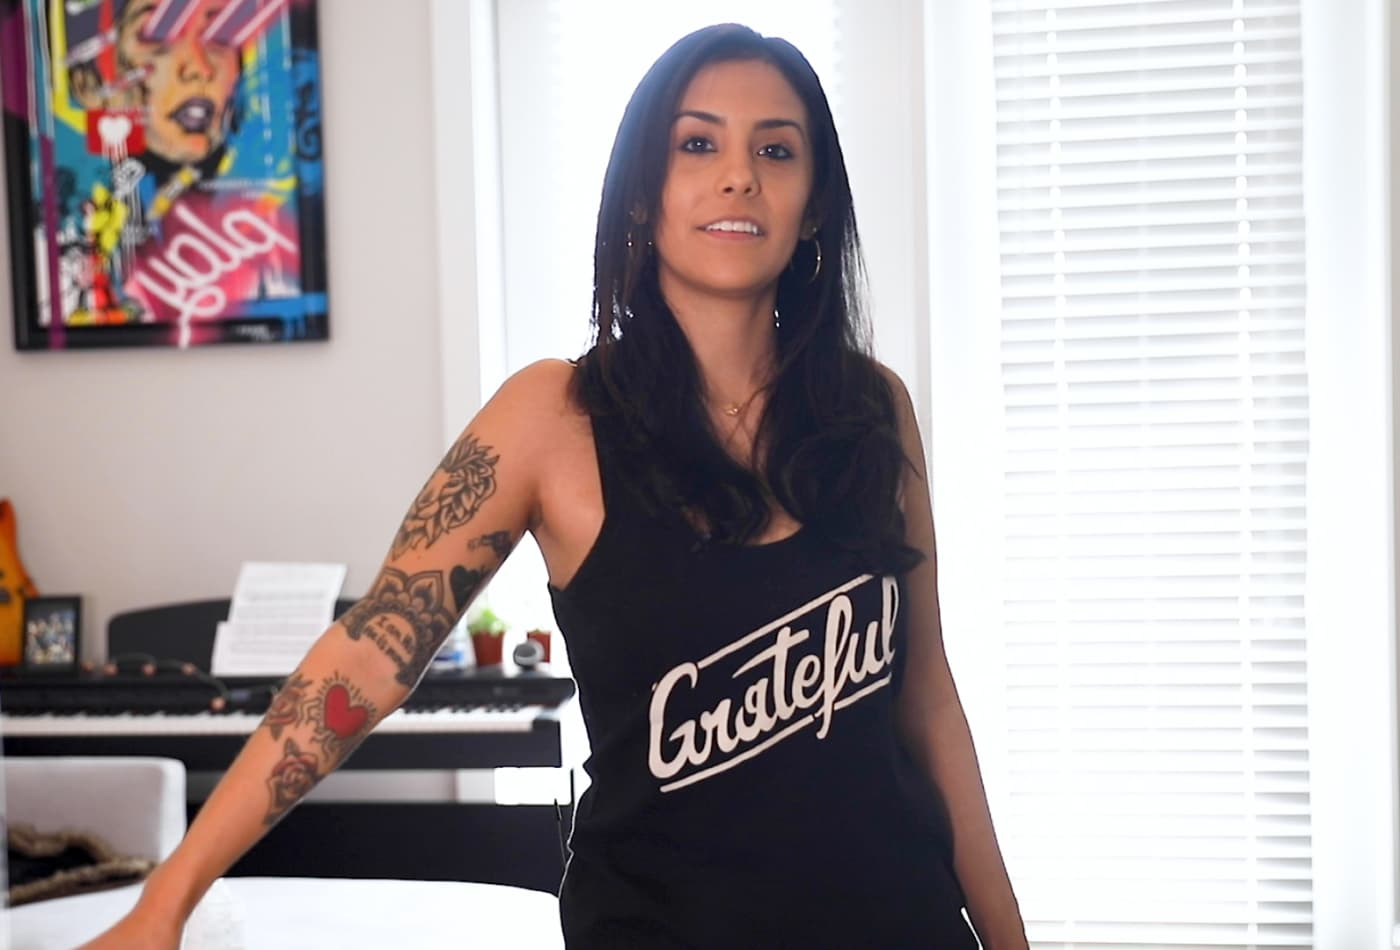 How a 31-year-old making $145K in Austin spends her money